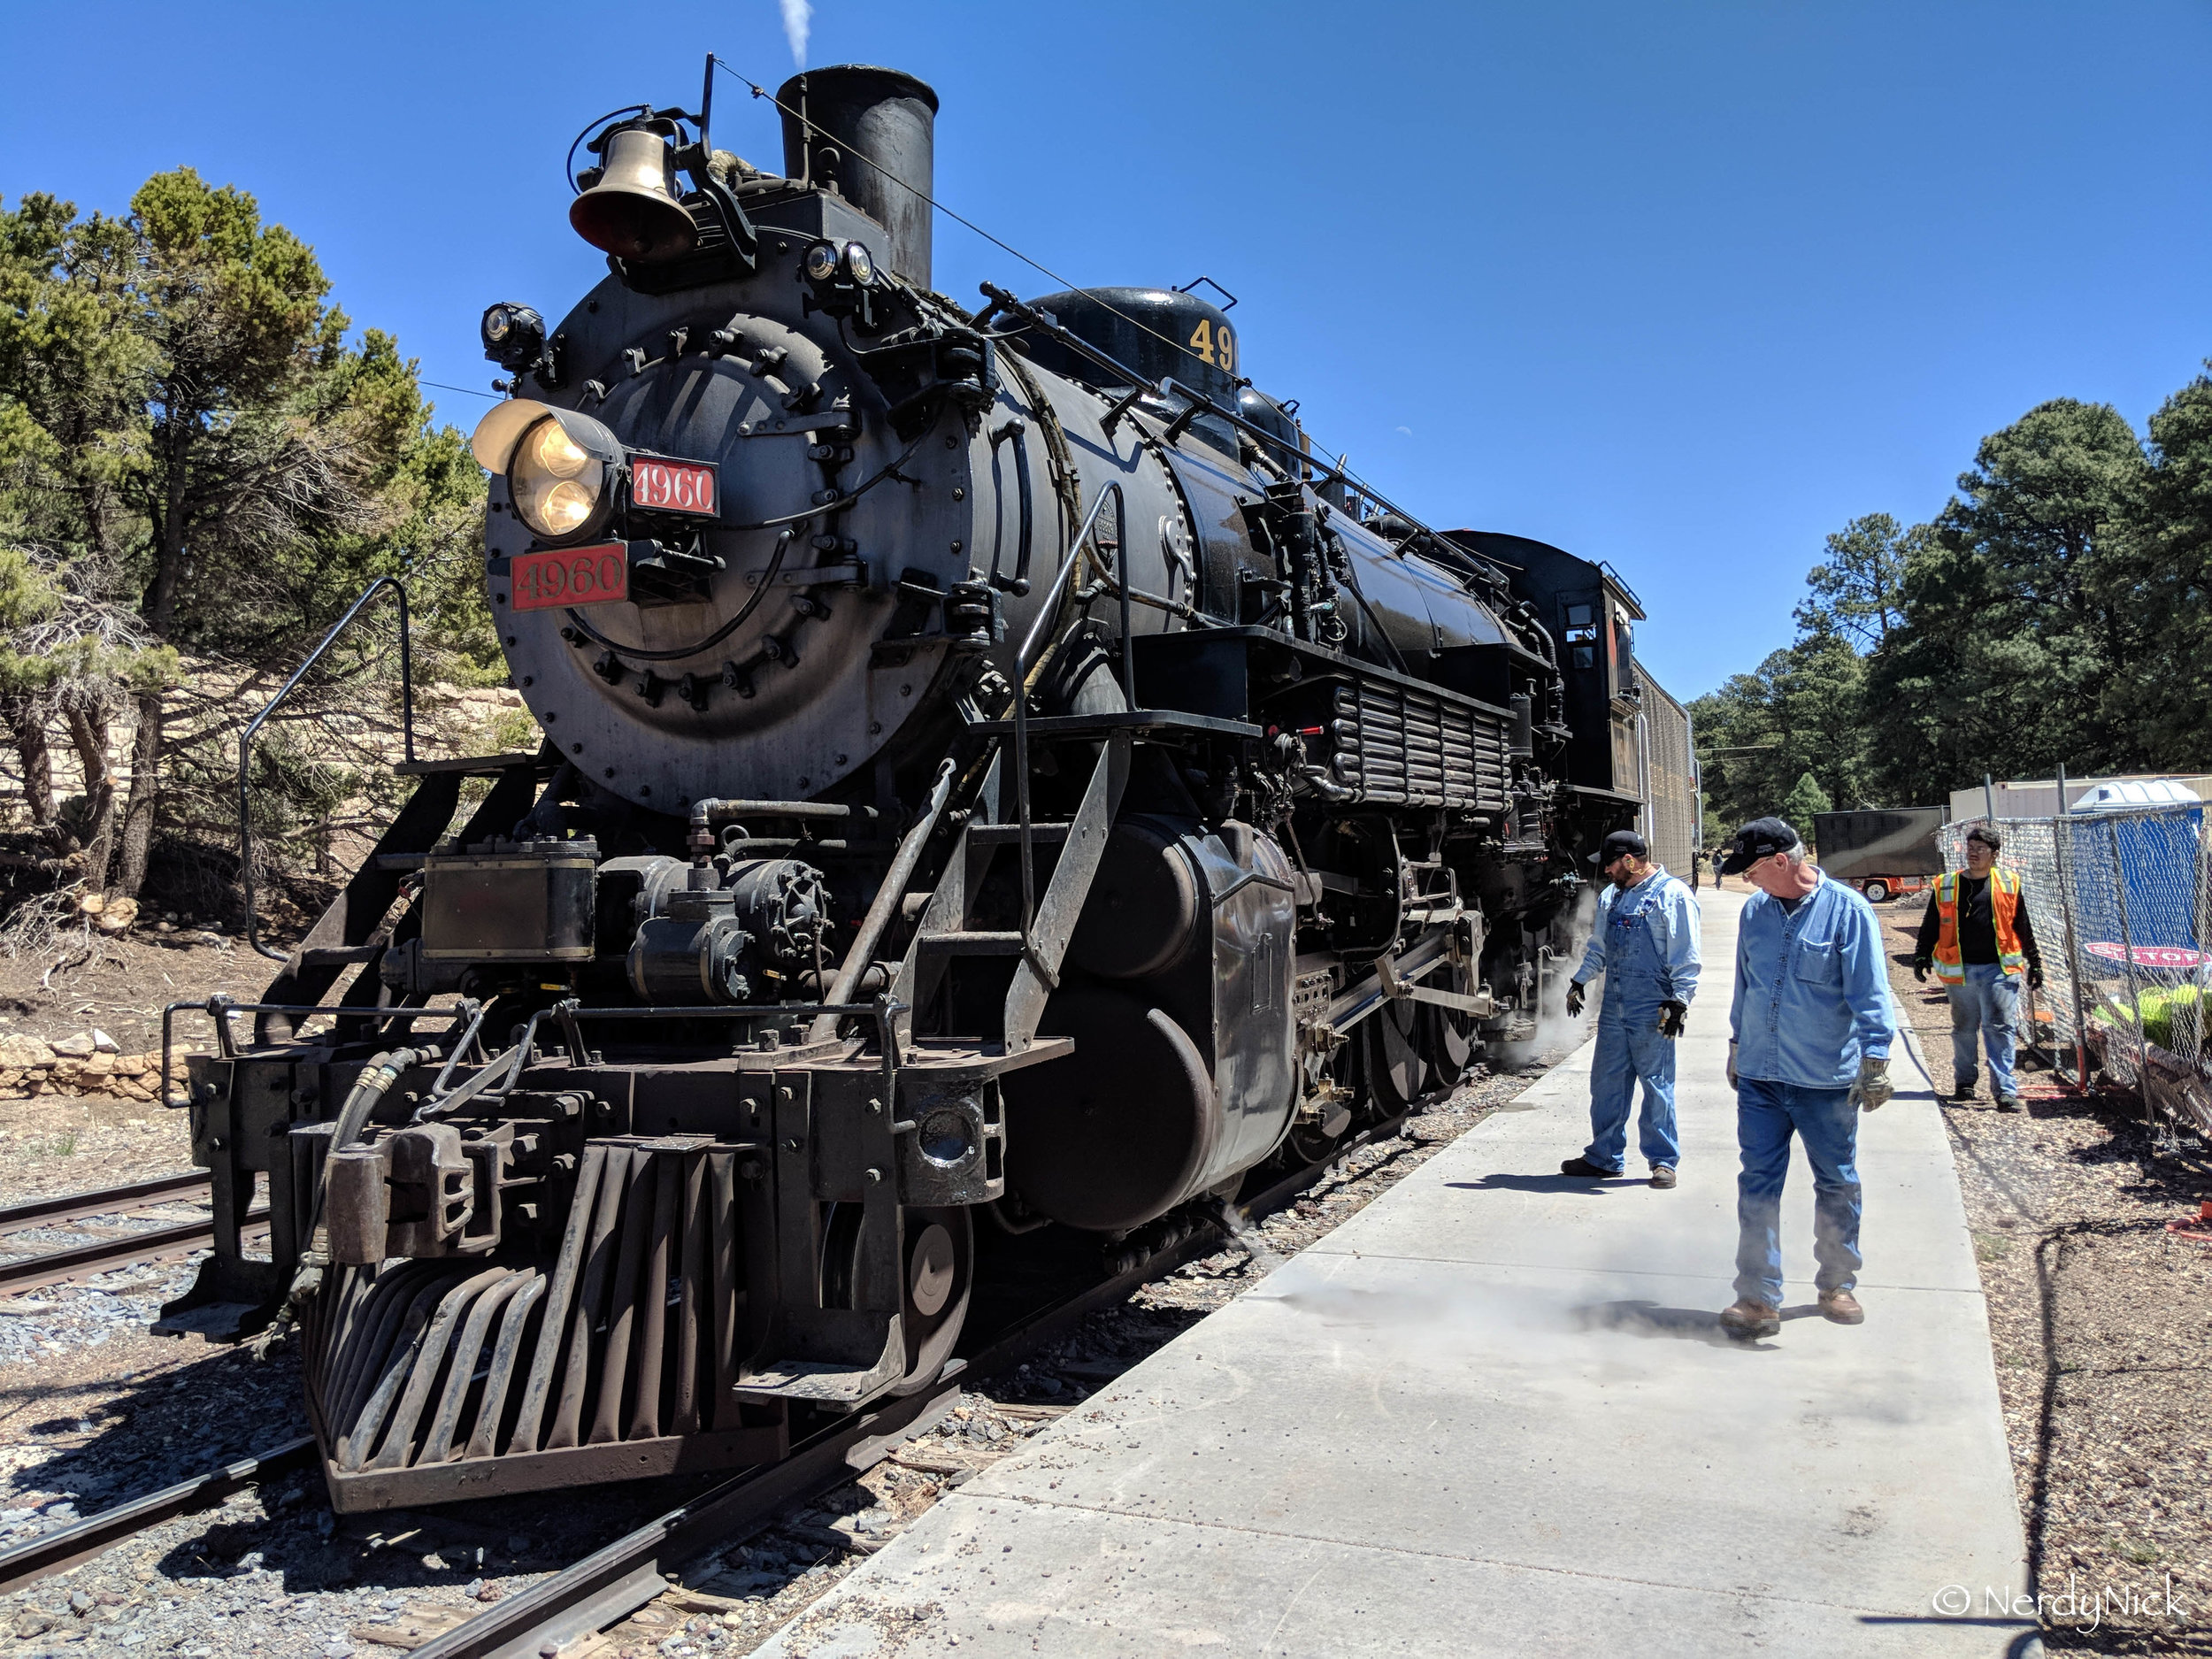 The good old steam locomotive that hauled us here